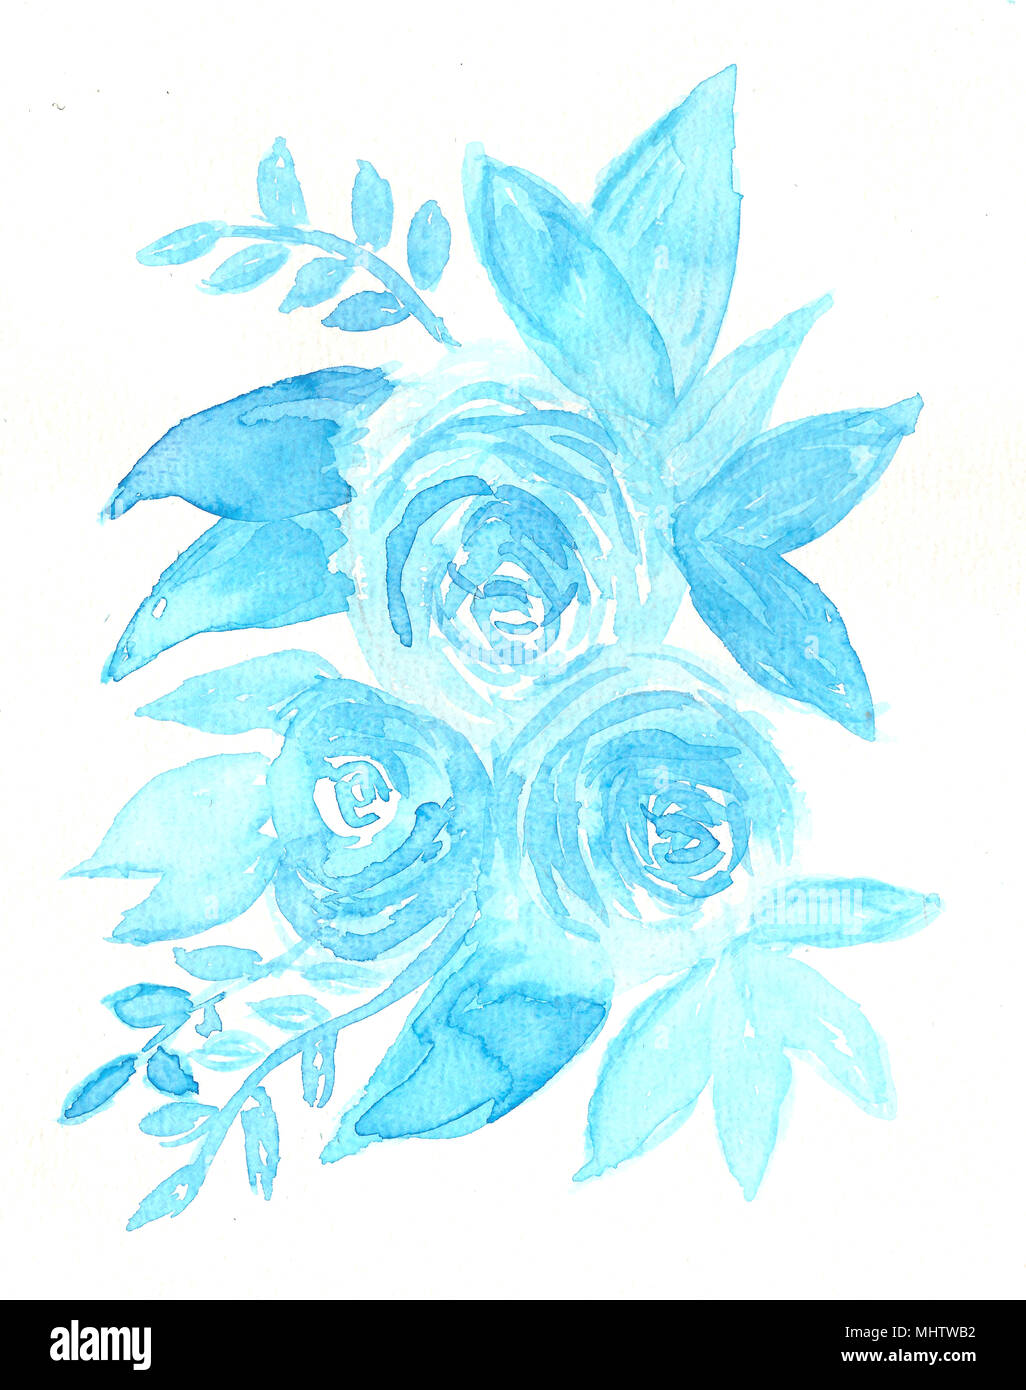 Hand drawn watercolor blue flowers and leaves stock photo 183099590 hand drawn watercolor blue flowers and leaves izmirmasajfo